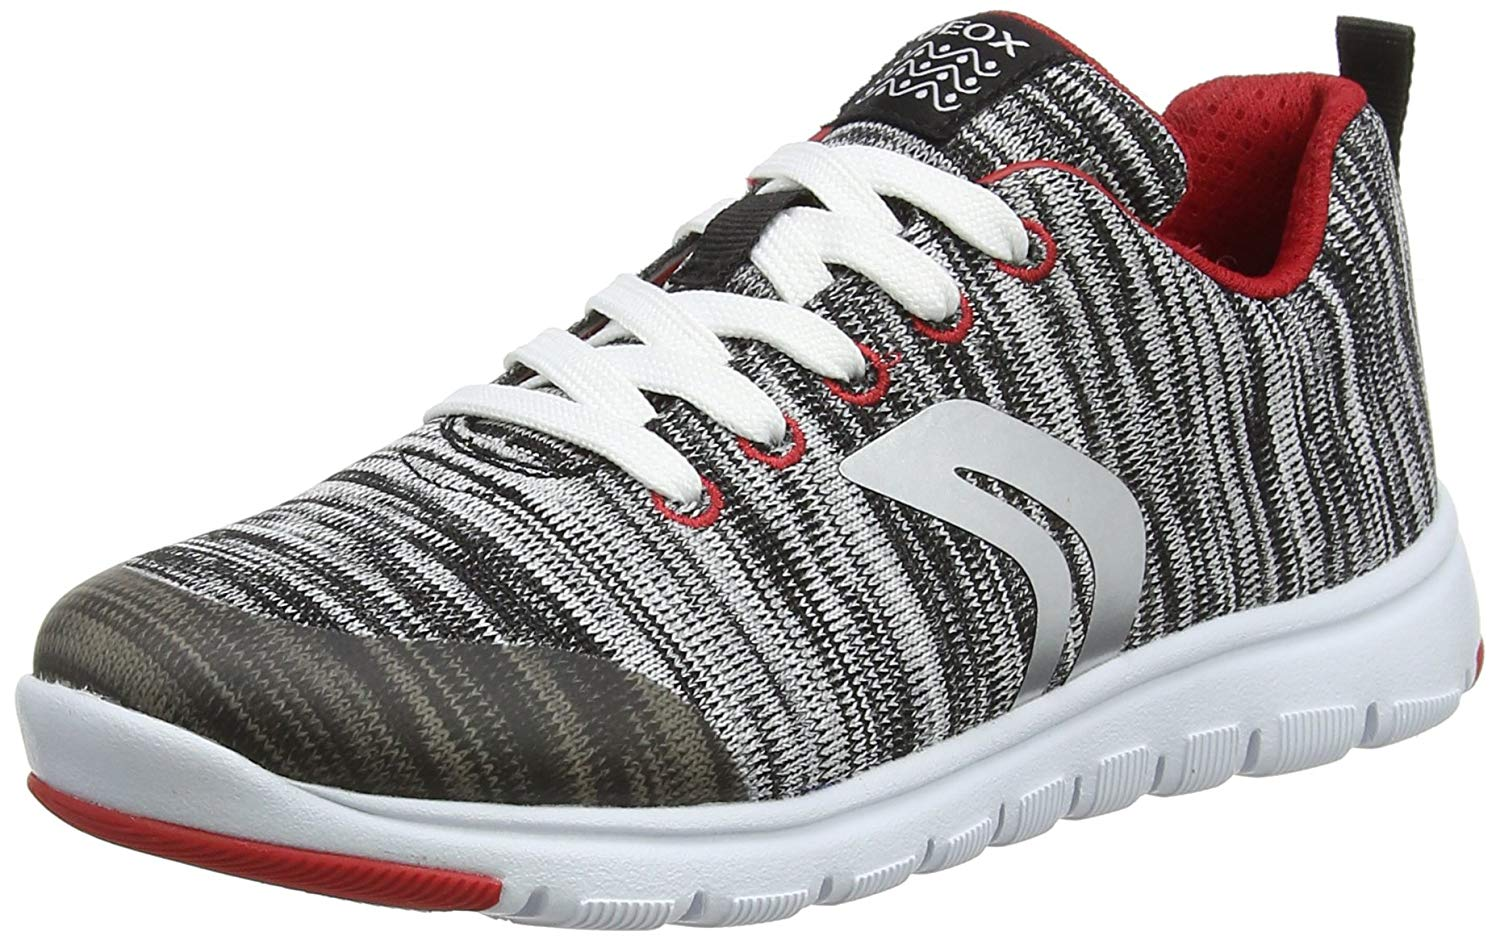 Geox J Xunday B L Boys Sneakers/Woven Textile Shoes